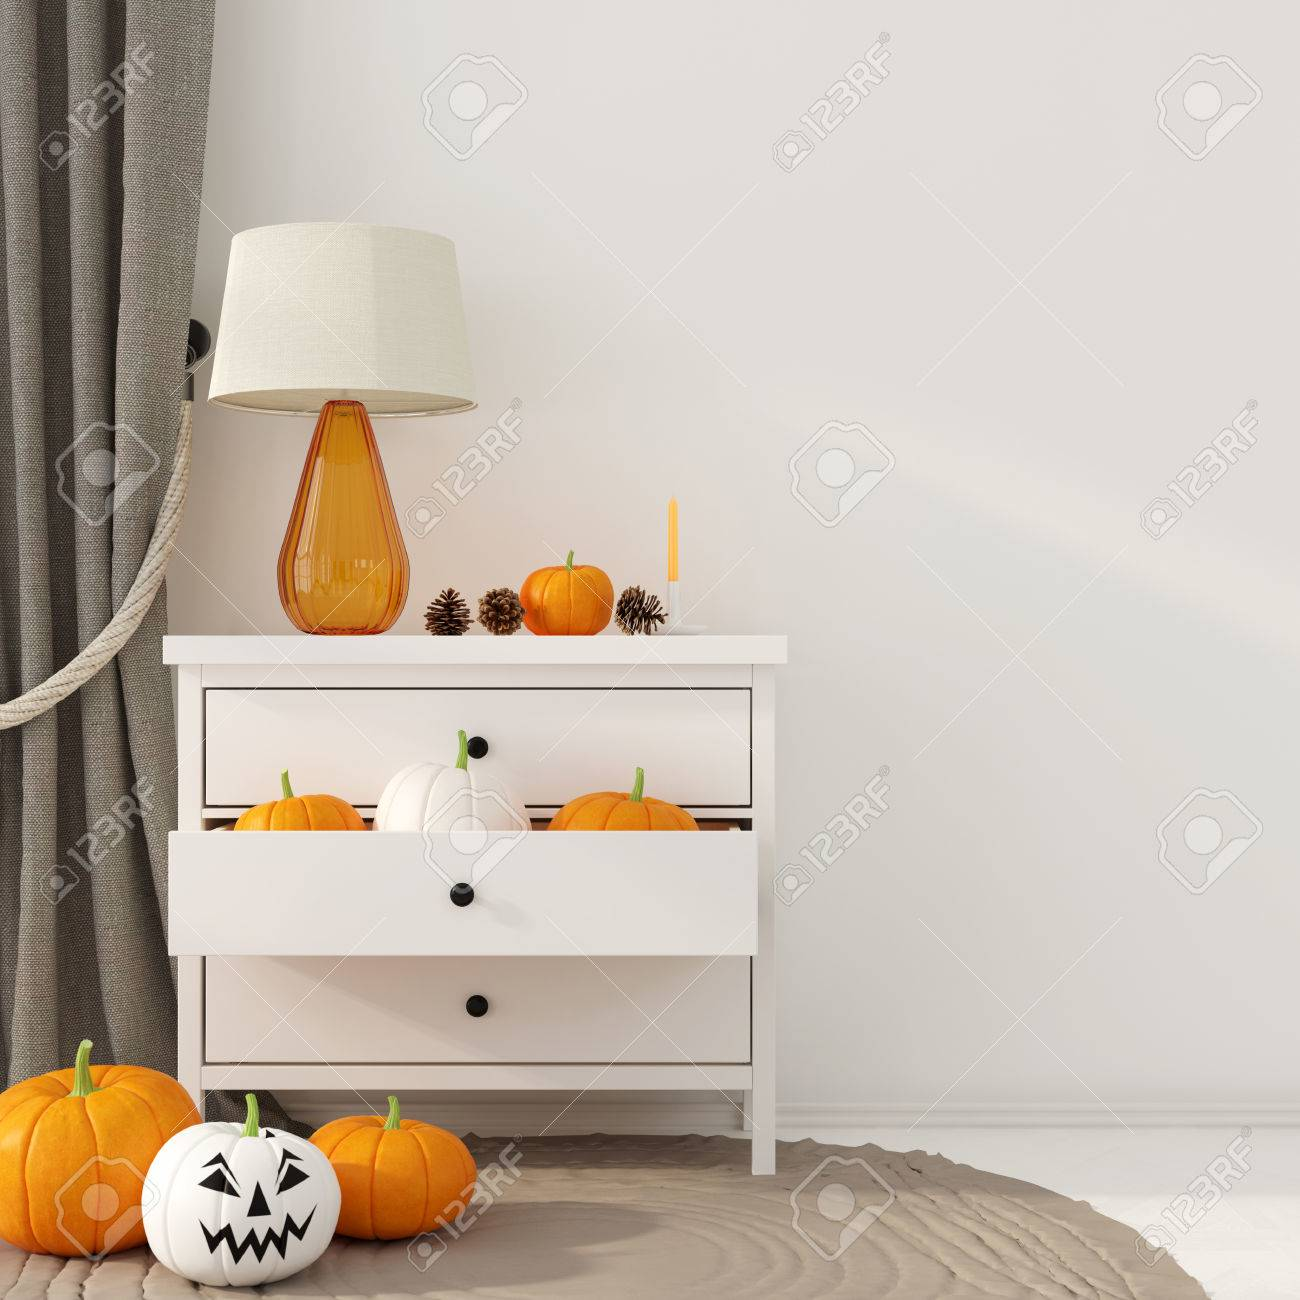 Halloween Decoration Interieur Interior Decoration For Halloween Small White Dresser With